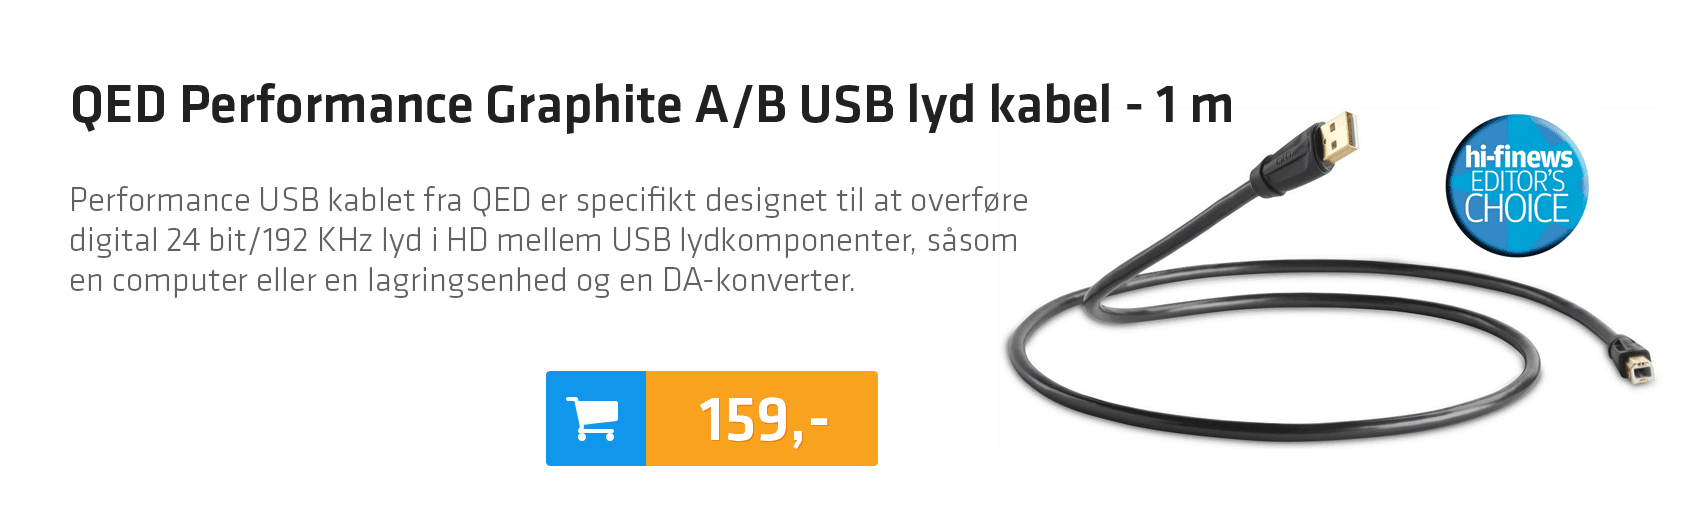 QED Performance Graphite A/B USB lyd kabel - 1 m